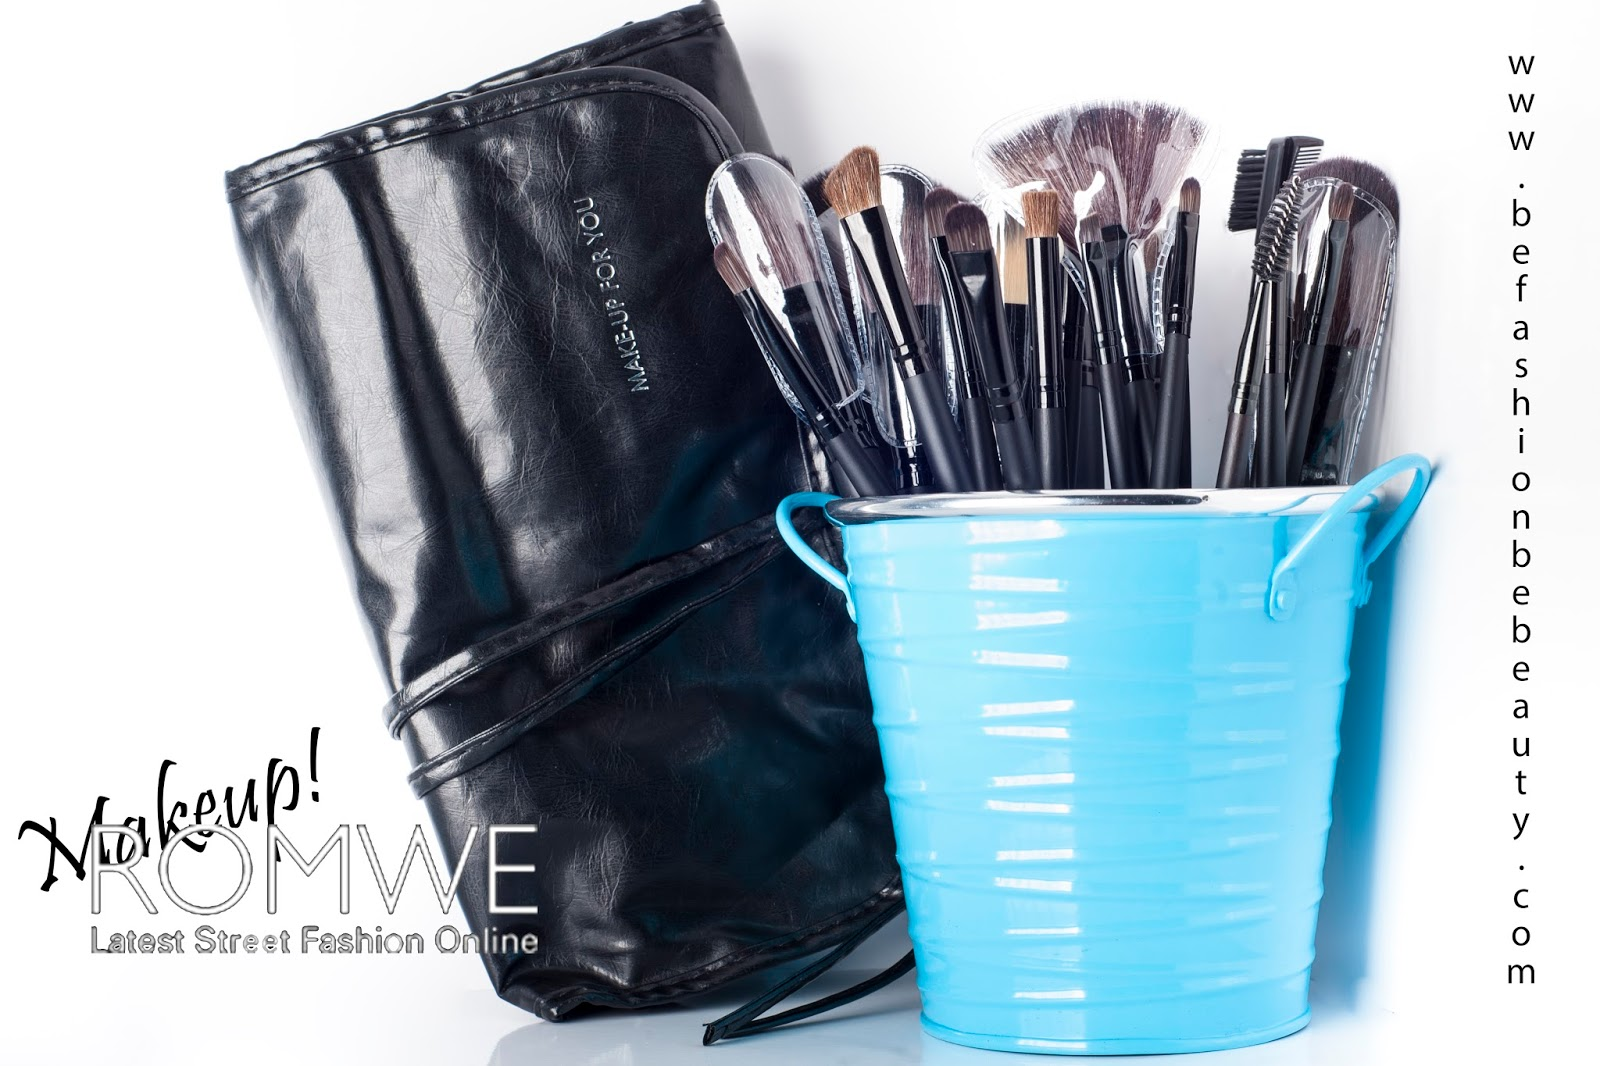 Makeup for you. - Romwe - Be fashion. Be beauty.